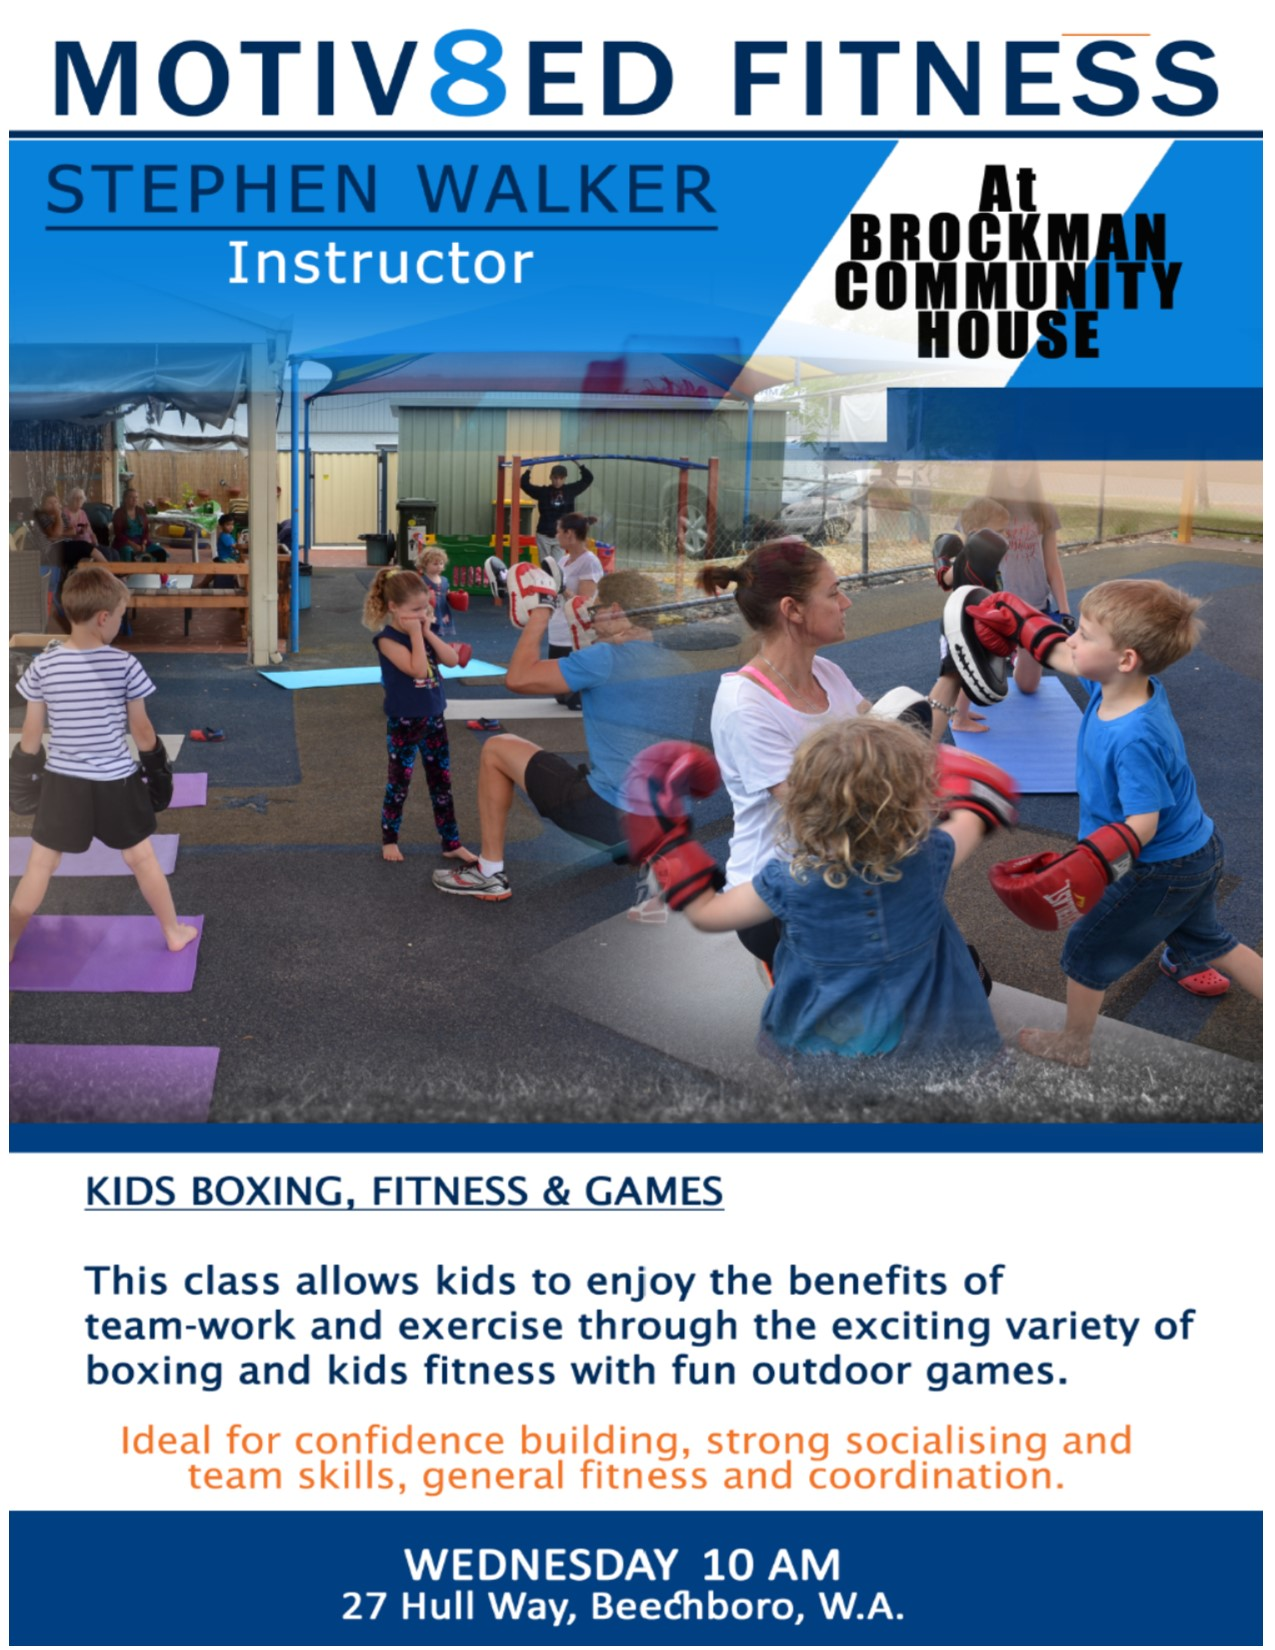 Family Boxing & Fitness